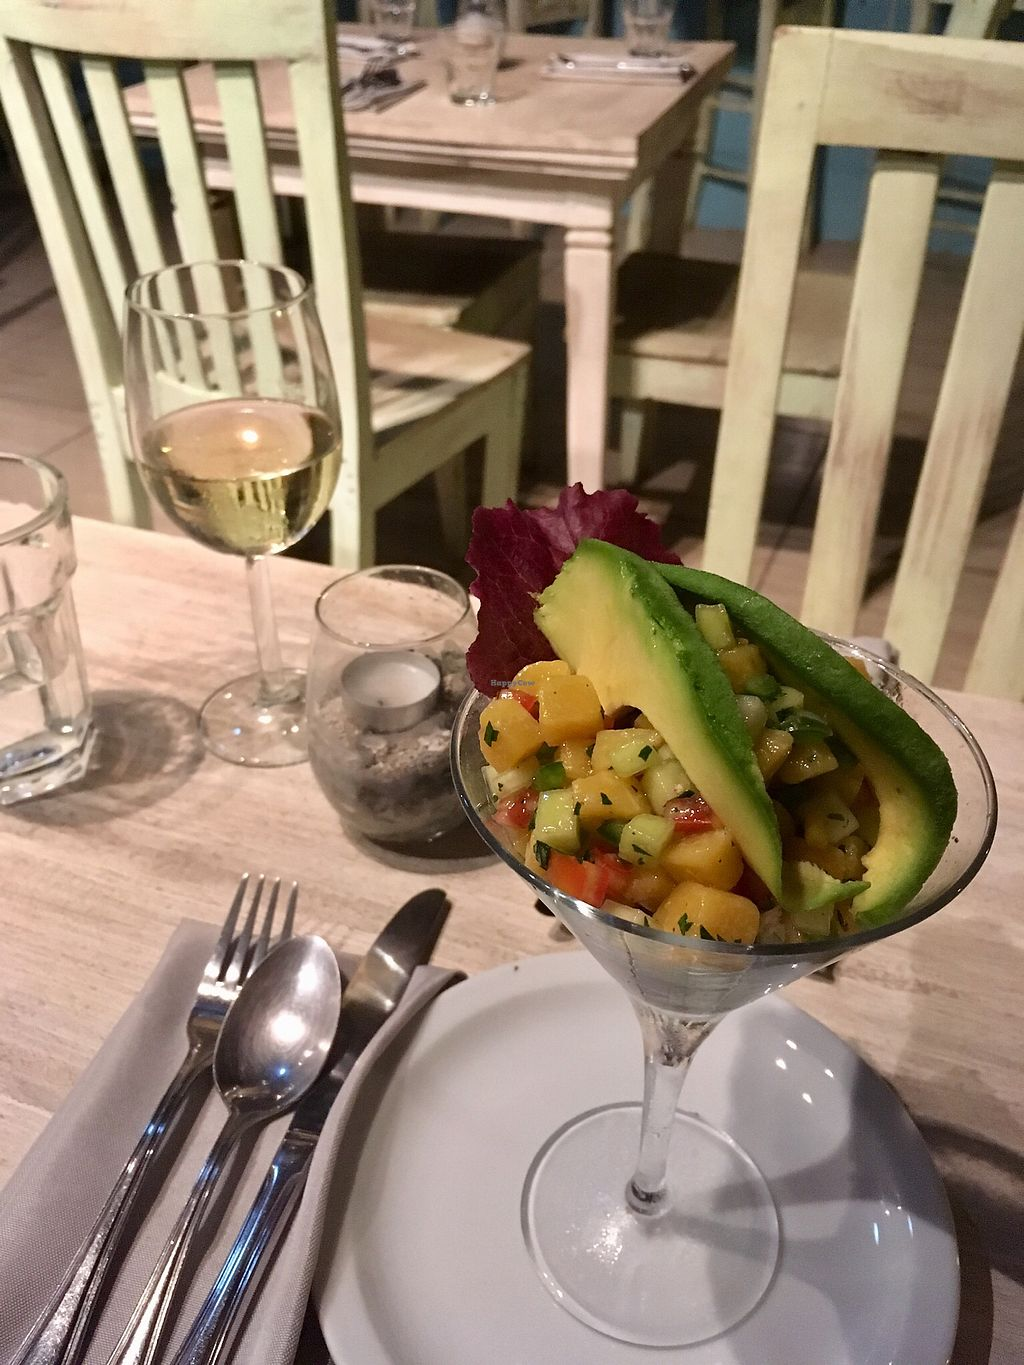 "Photo of Buddha's Garden  by <a href=""/members/profile/Jean-No%C3%ABlWildhaber"">Jean-NoëlWildhaber</a> <br/>Plantain ceviche: amazing! <br/> April 29, 2018  - <a href='/contact/abuse/image/46340/392300'>Report</a>"